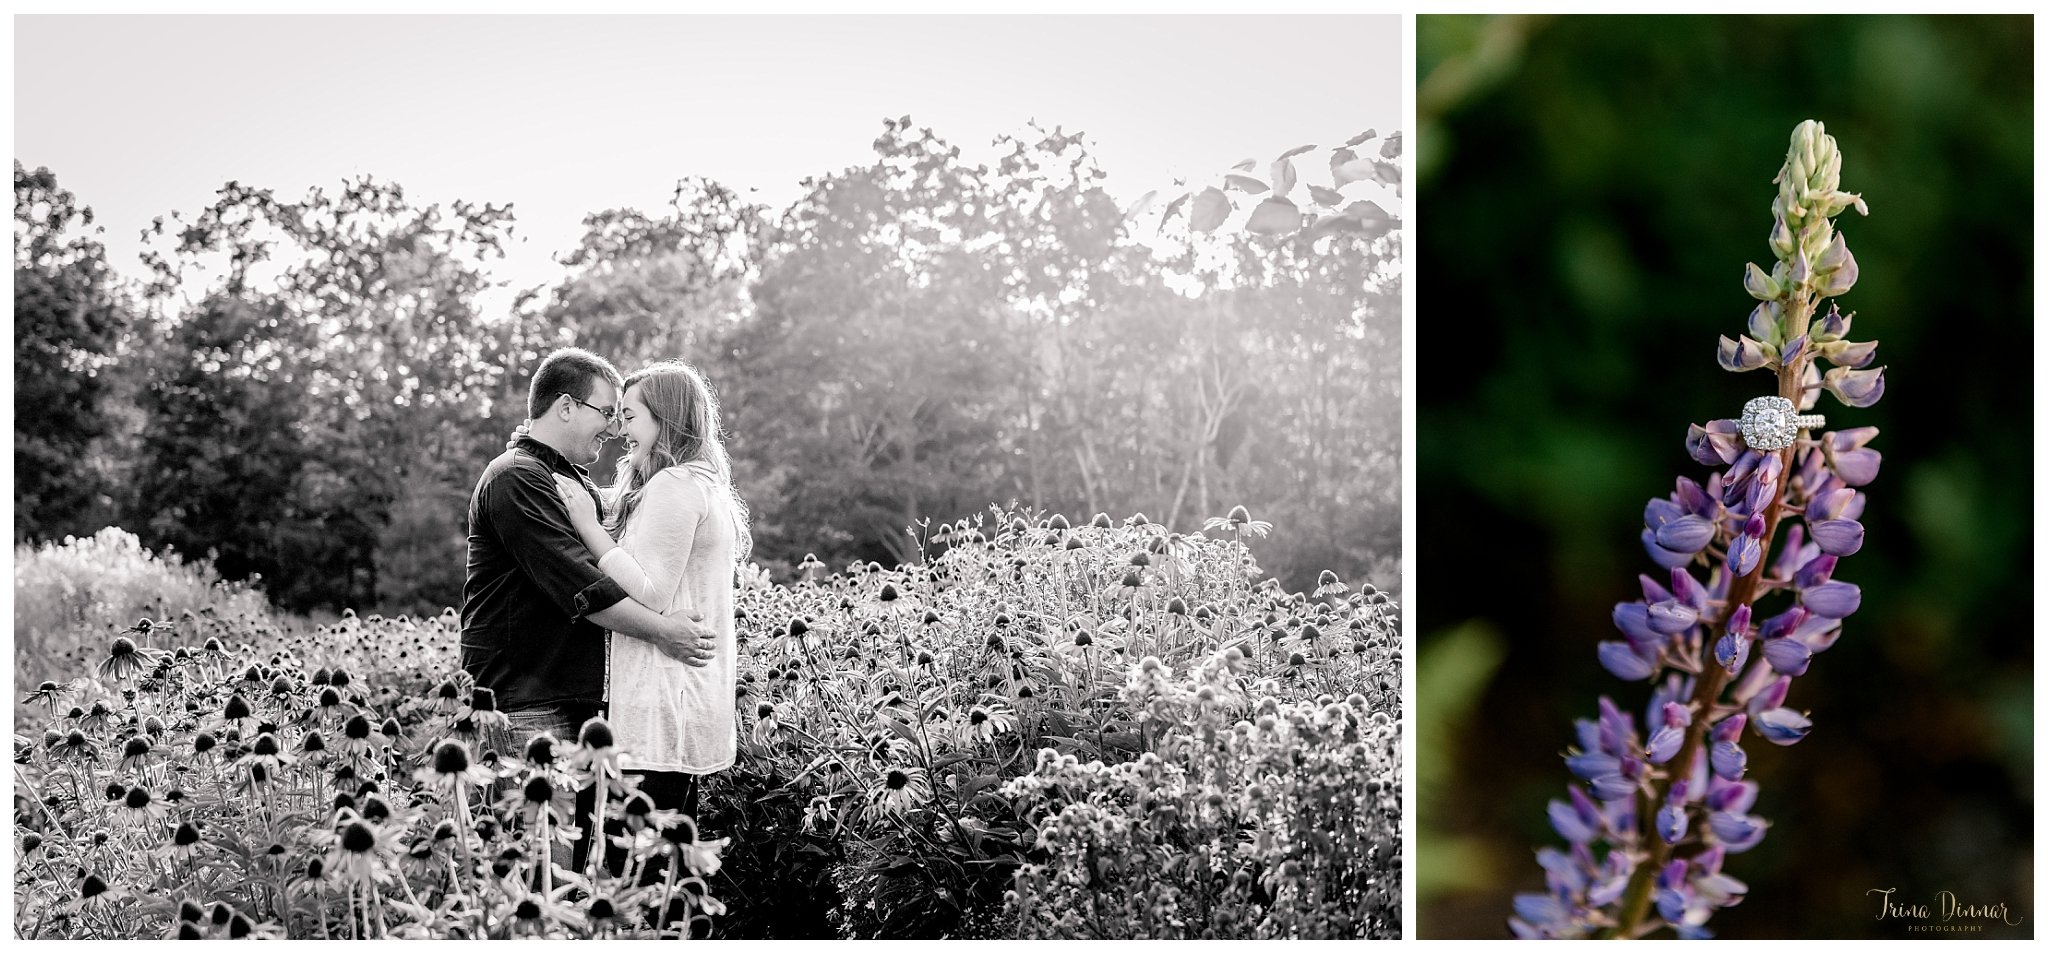 Engagement Session Photography in Maine